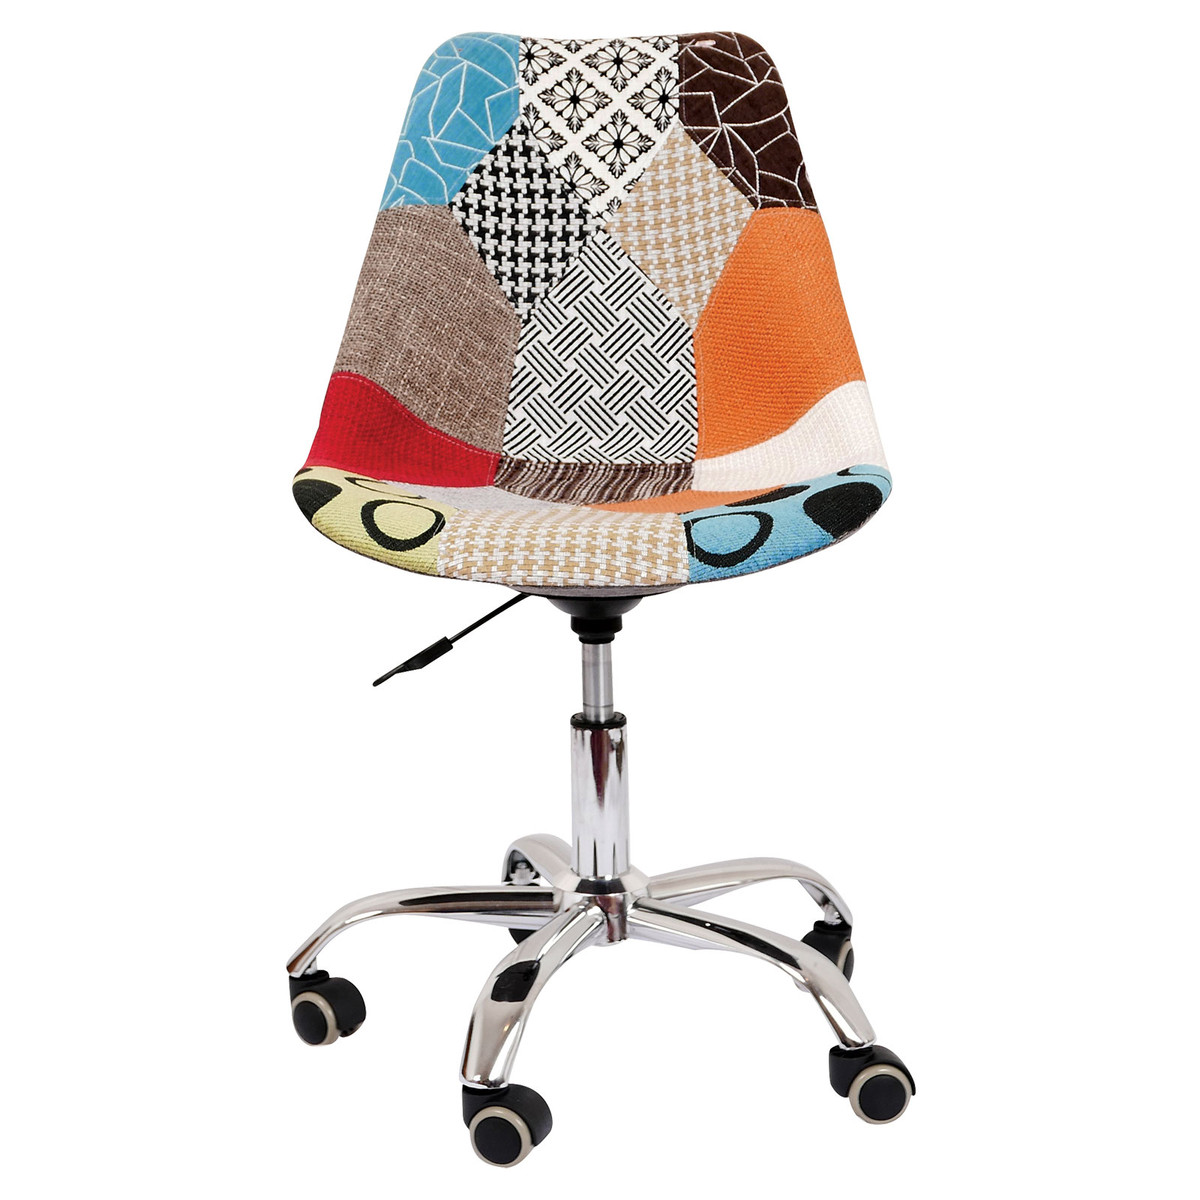 Jacob Mid Century Modern Multicolor Patch Fabric Upholstery Office Chair